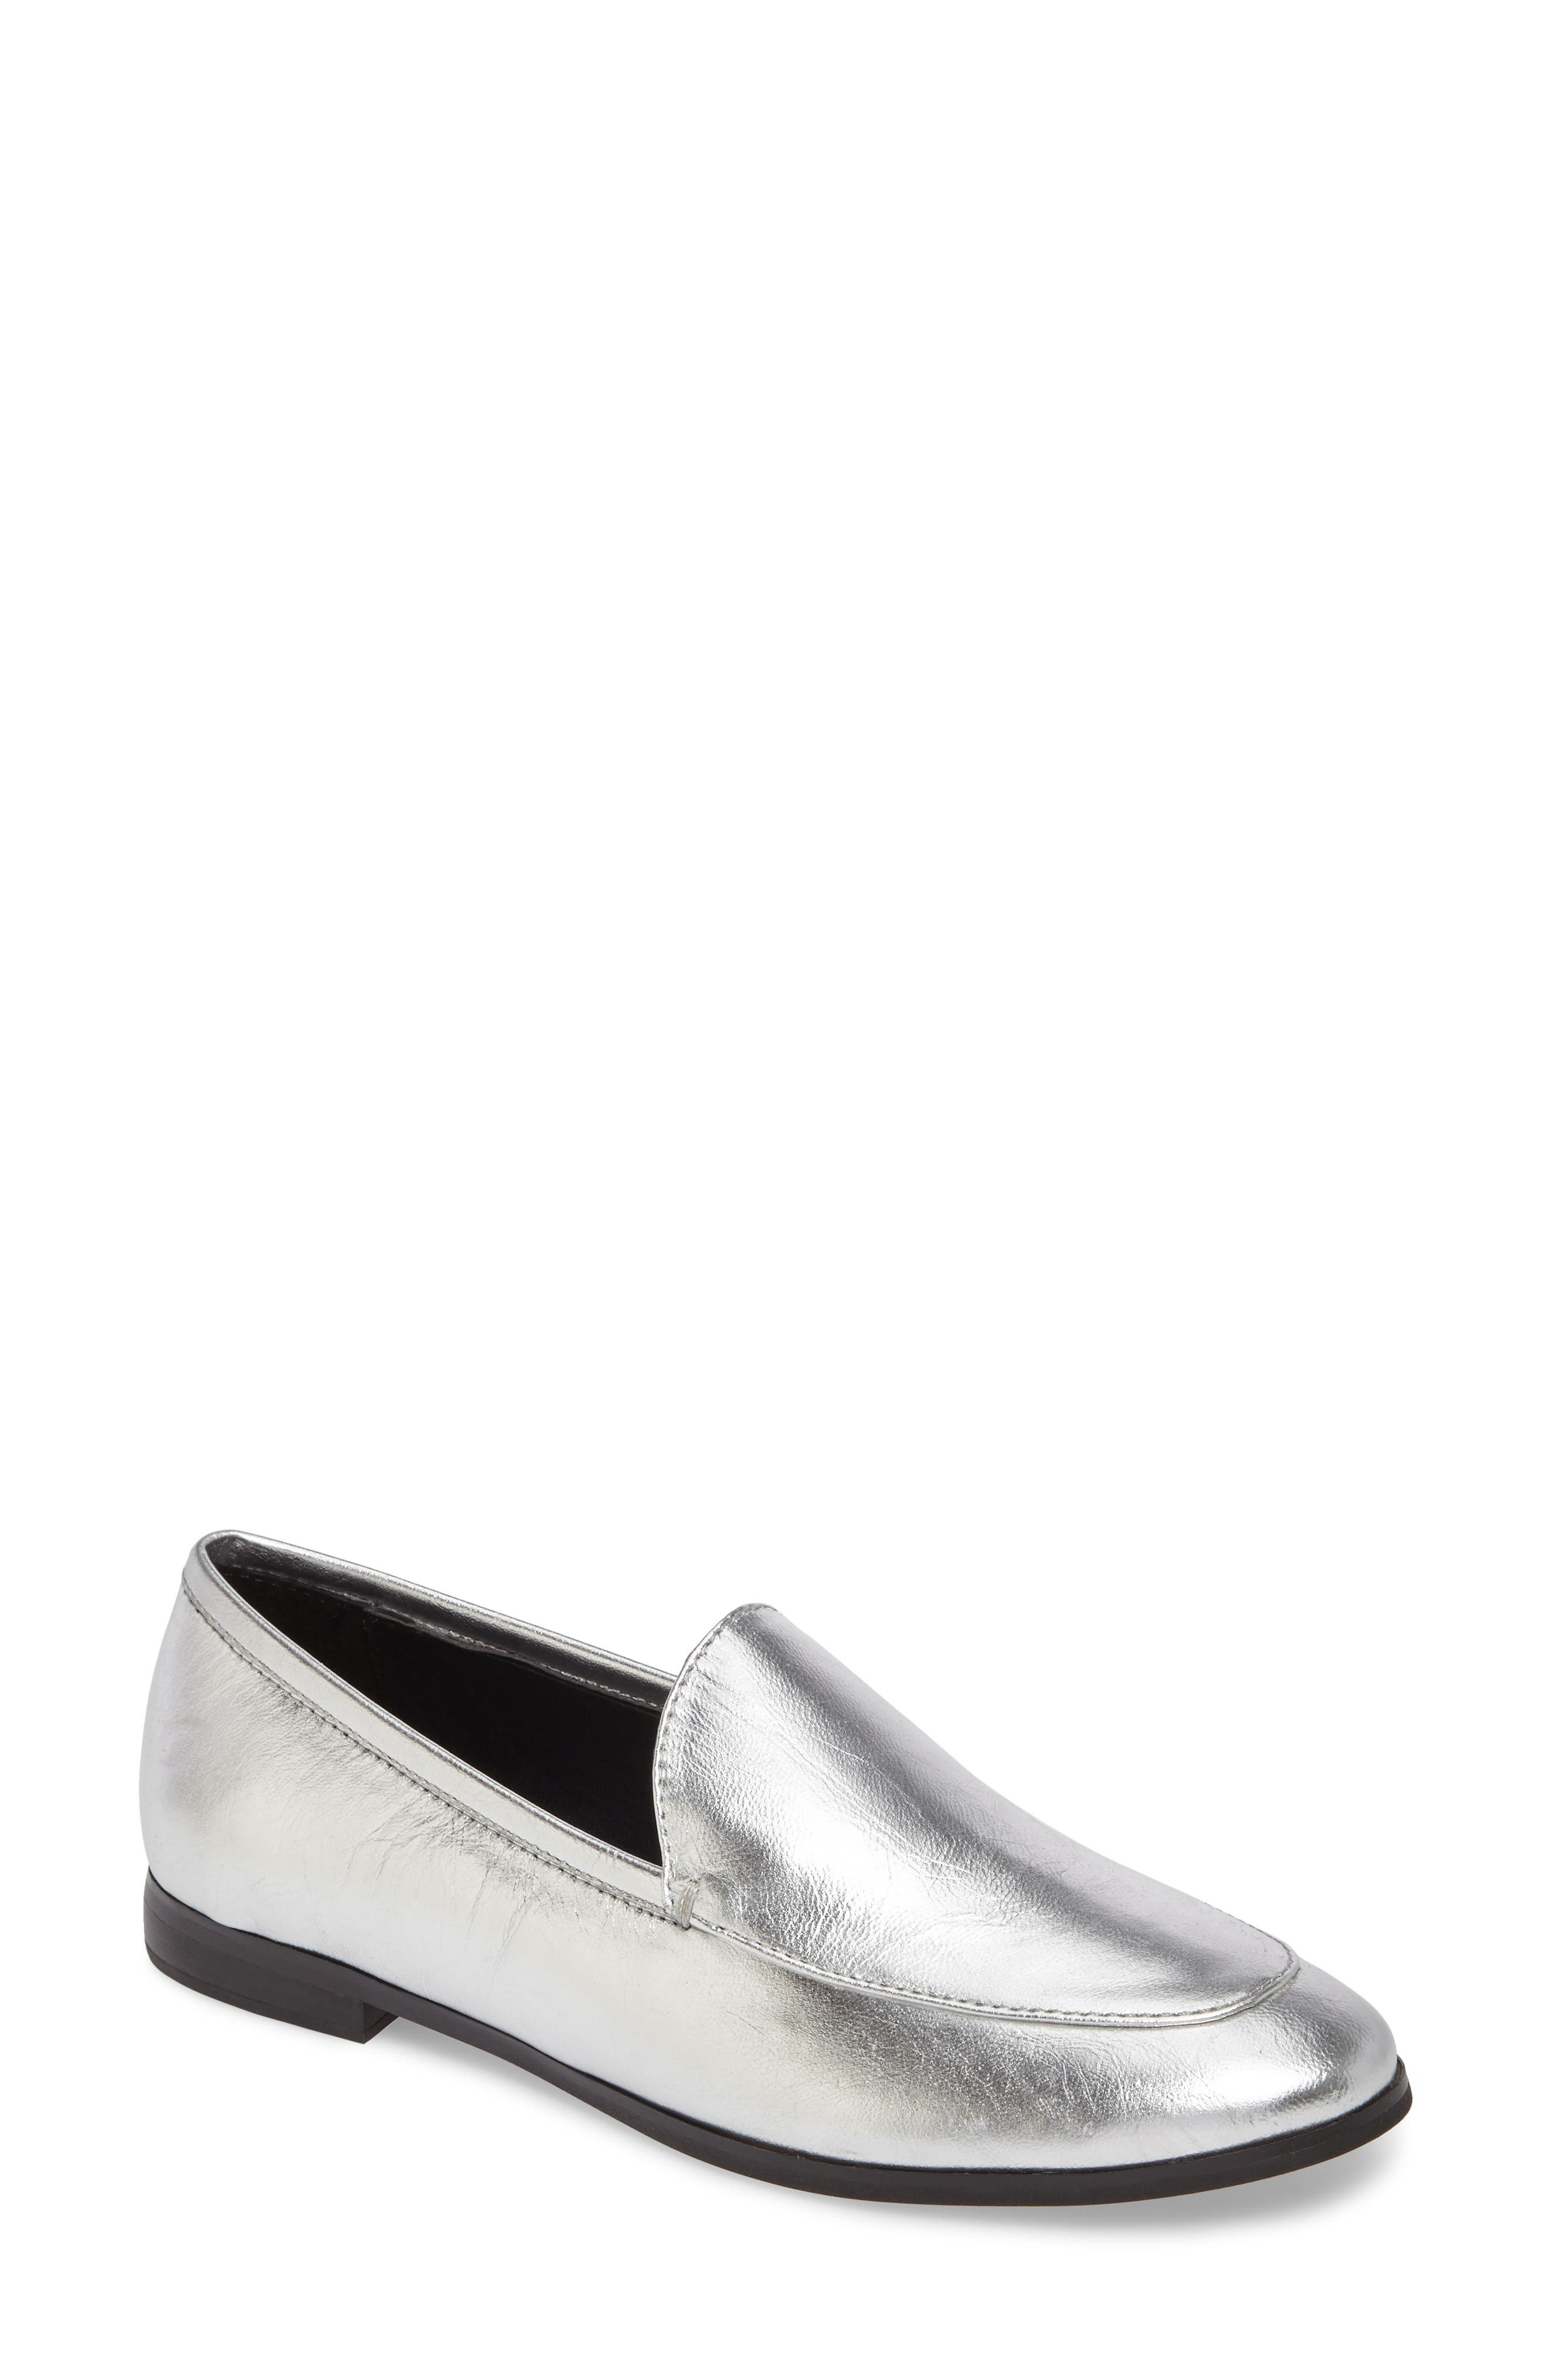 Dylan Metallic Loafer,                             Main thumbnail 1, color,                             040